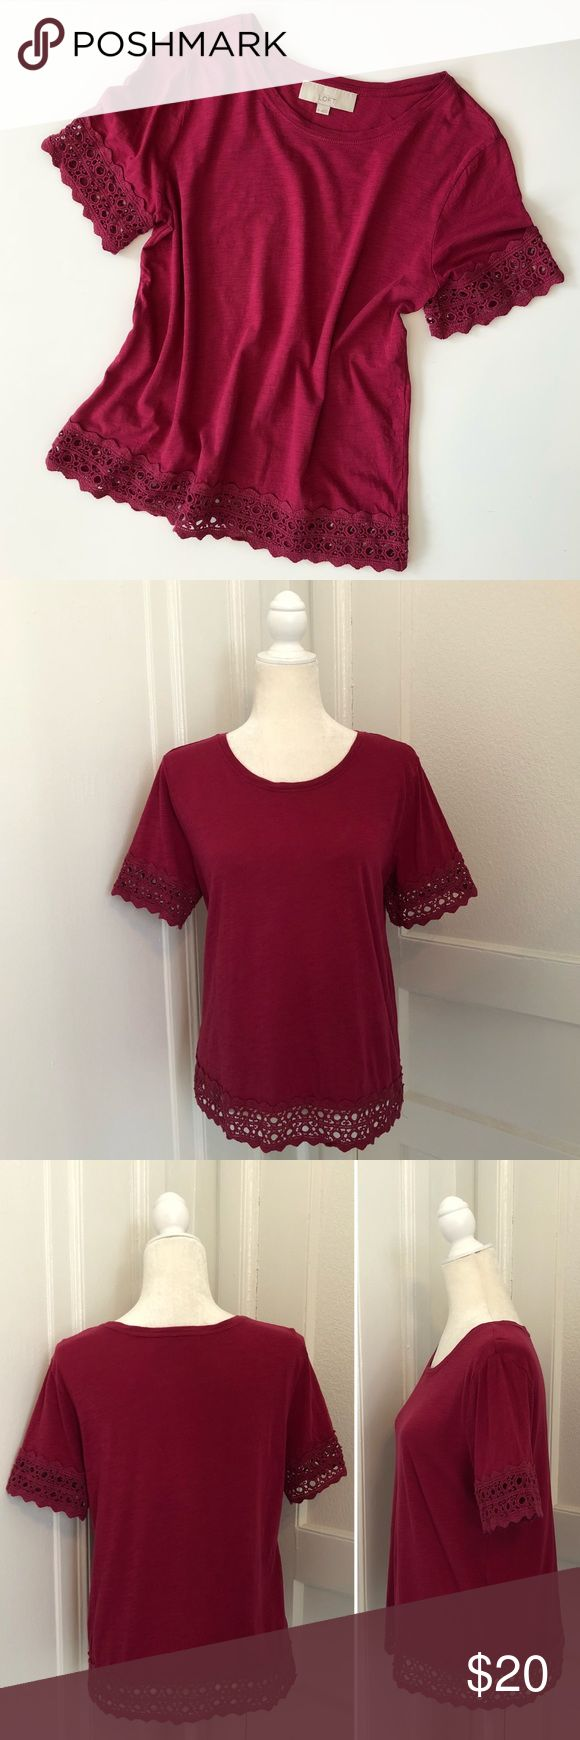 "LOFT Cranberry Crochet Lace Trim Tee Gently used condition. No stains/holes/signs of wear. Cranberry red color t-shirt with crochet details at sleeves and bottom hem.   Fit & Sizing -bust 18.75"" across -length 24""  Fabric & Care -100% cotton -machine wash LOFT Tops"